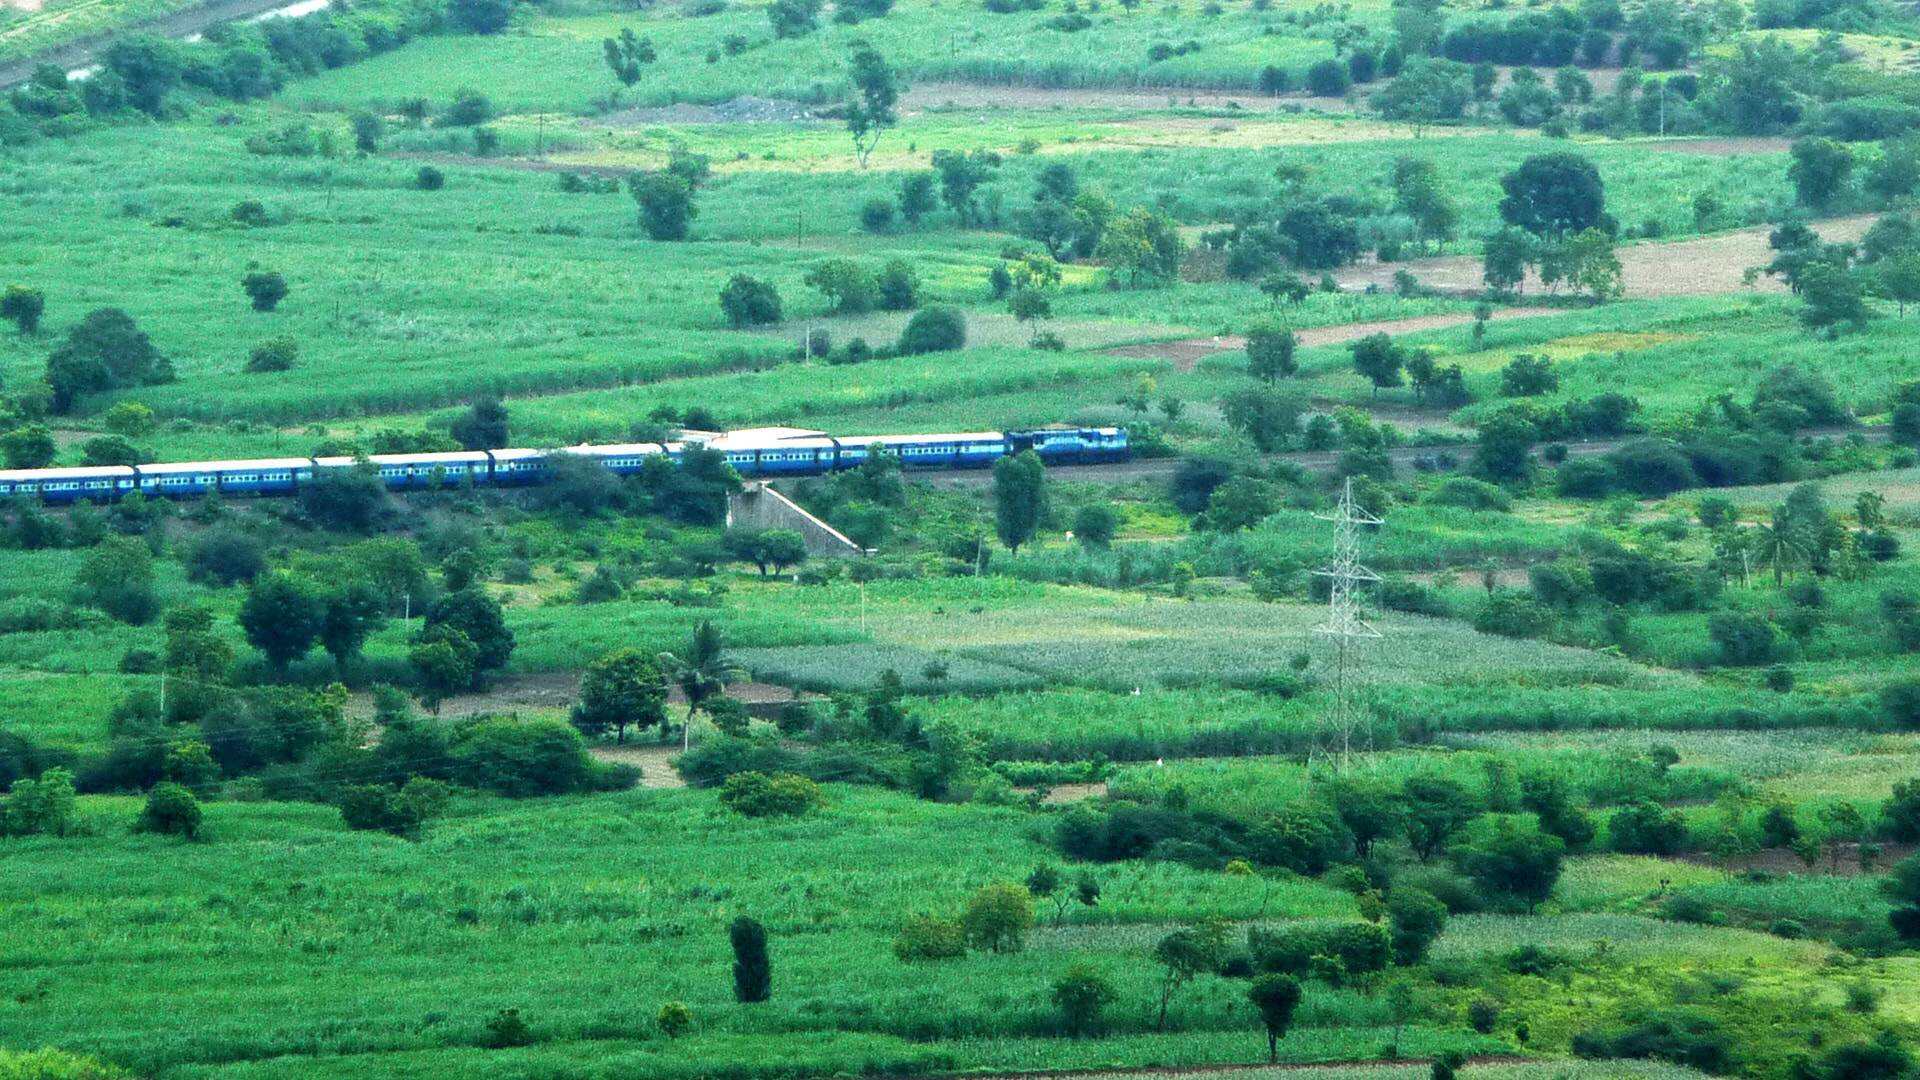 Photograph Train through farms by Mohit Yadav on 500px